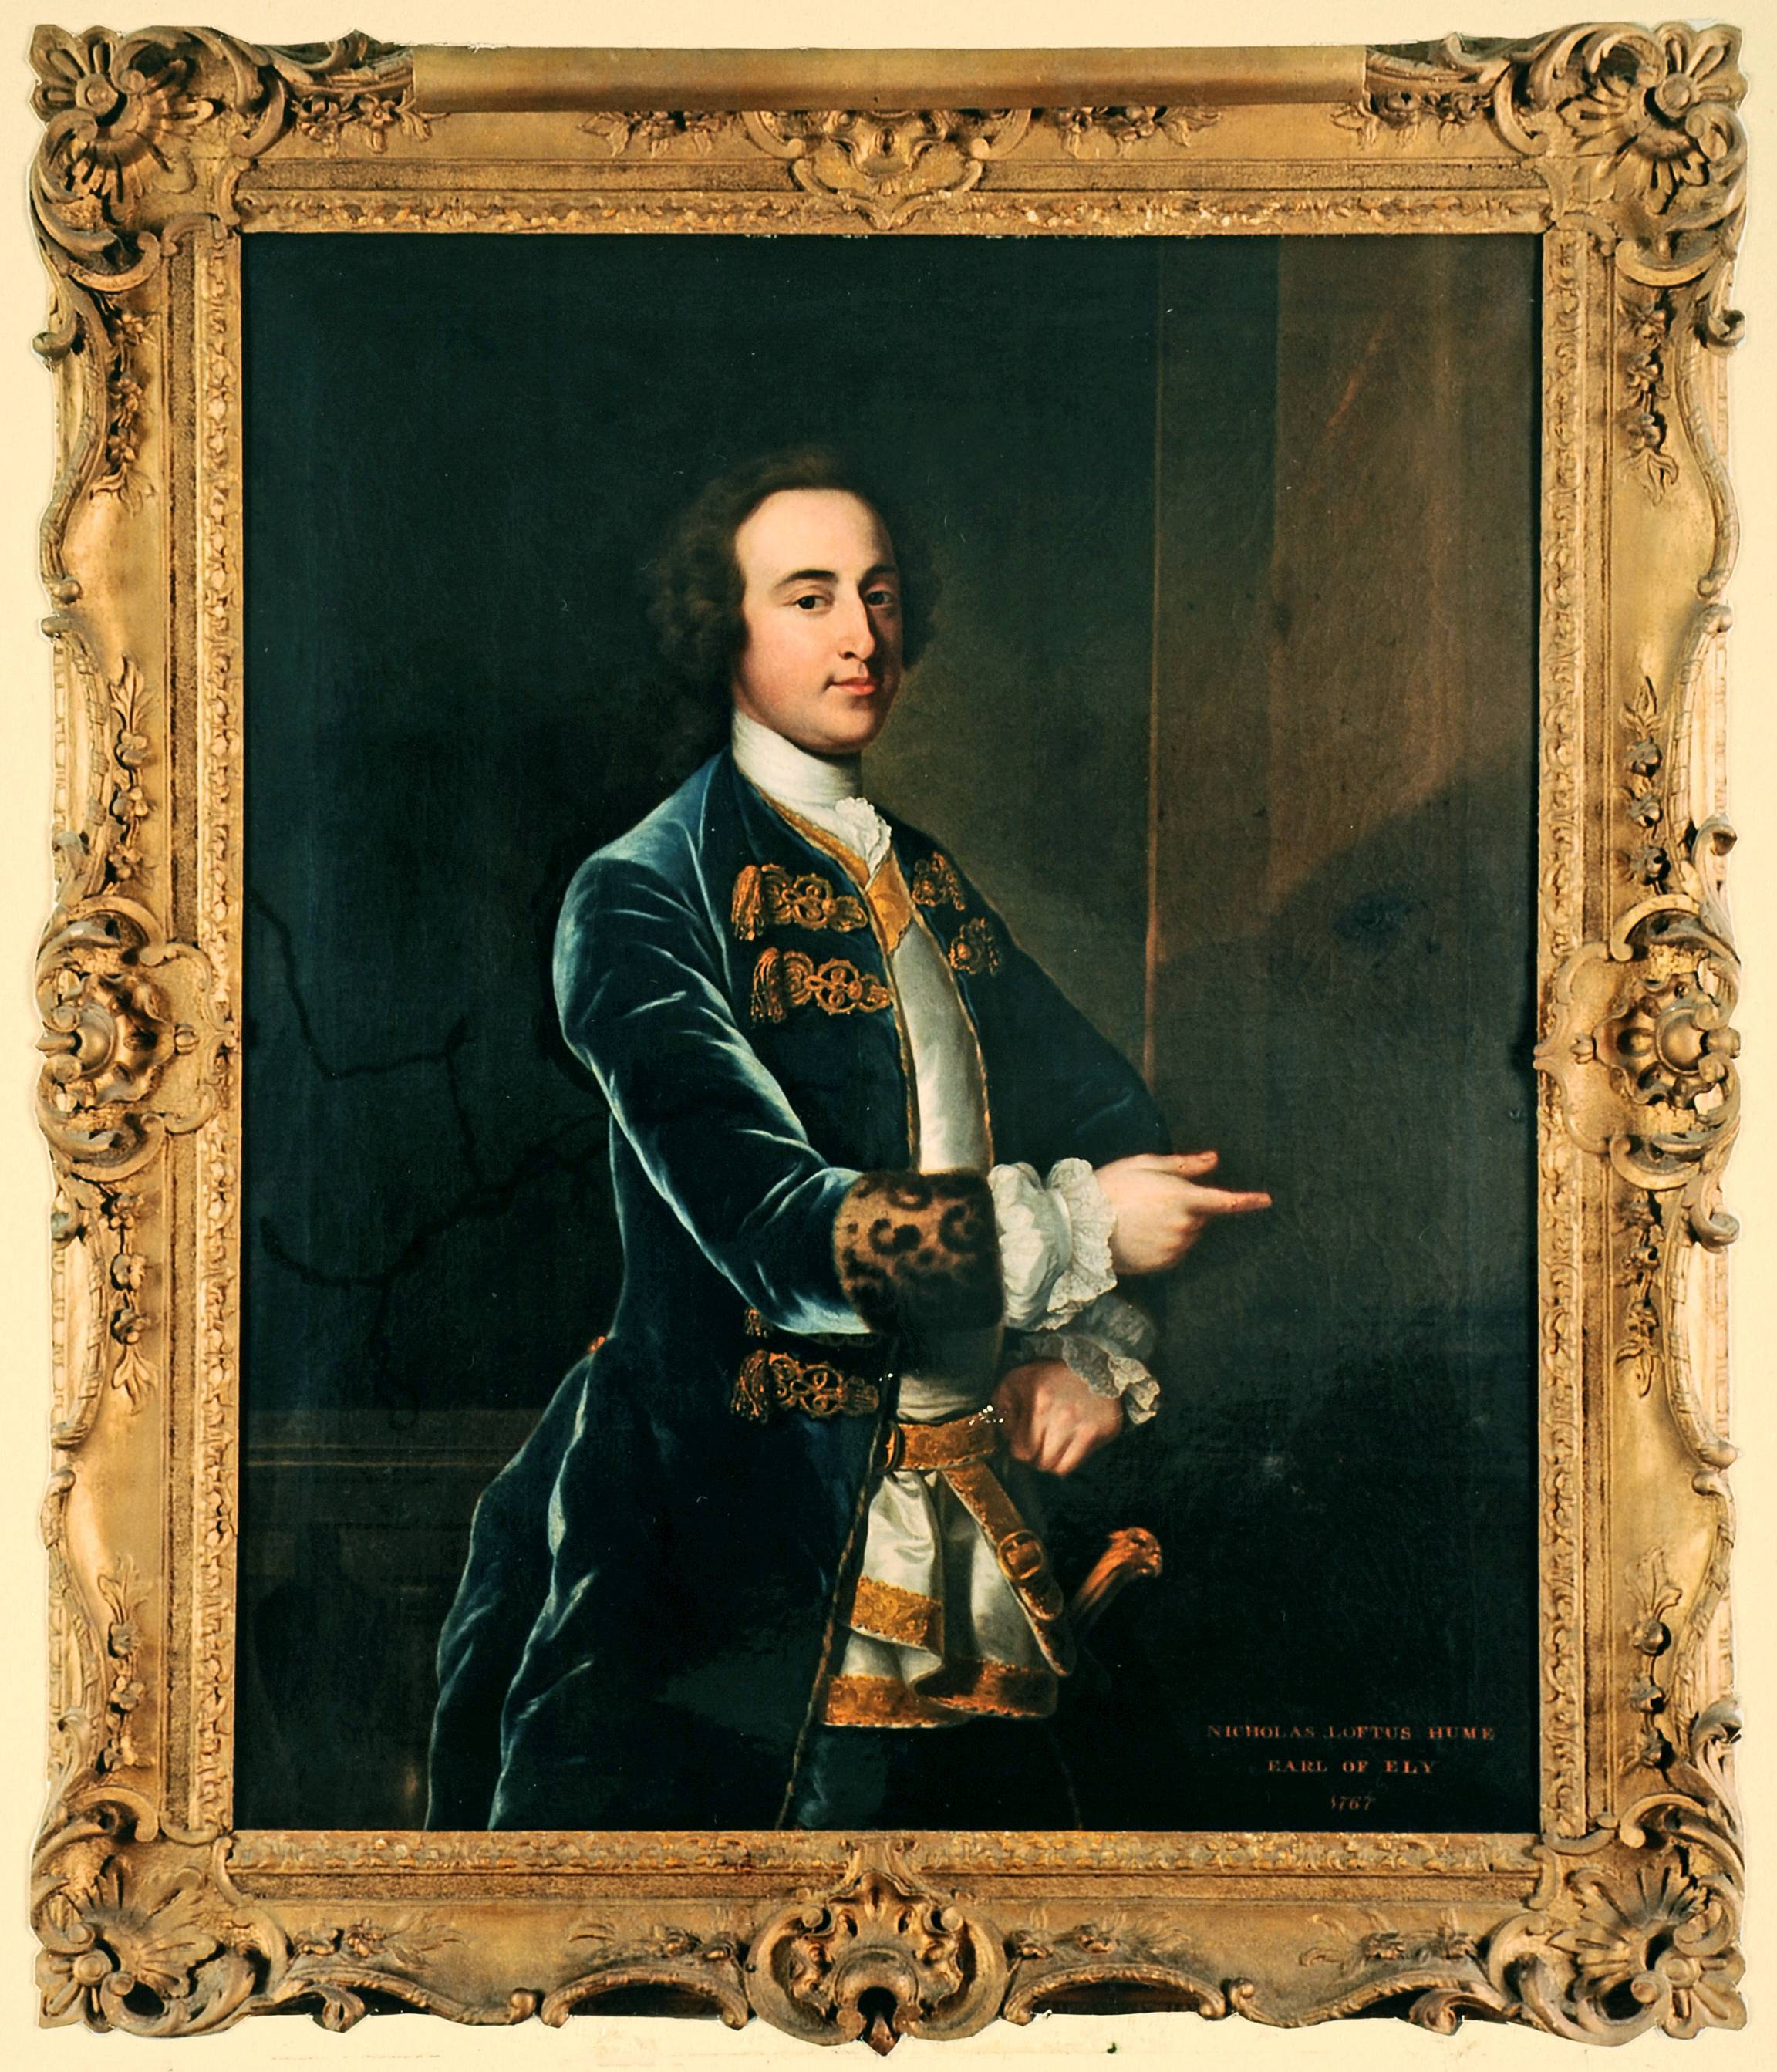 This portrait is of Nicholas Loftus Hume, 2nd Earl of Ely and is attributed to Robert Hunter. The painting is in a private collection, and the image is courtesy of Simon Loftus.